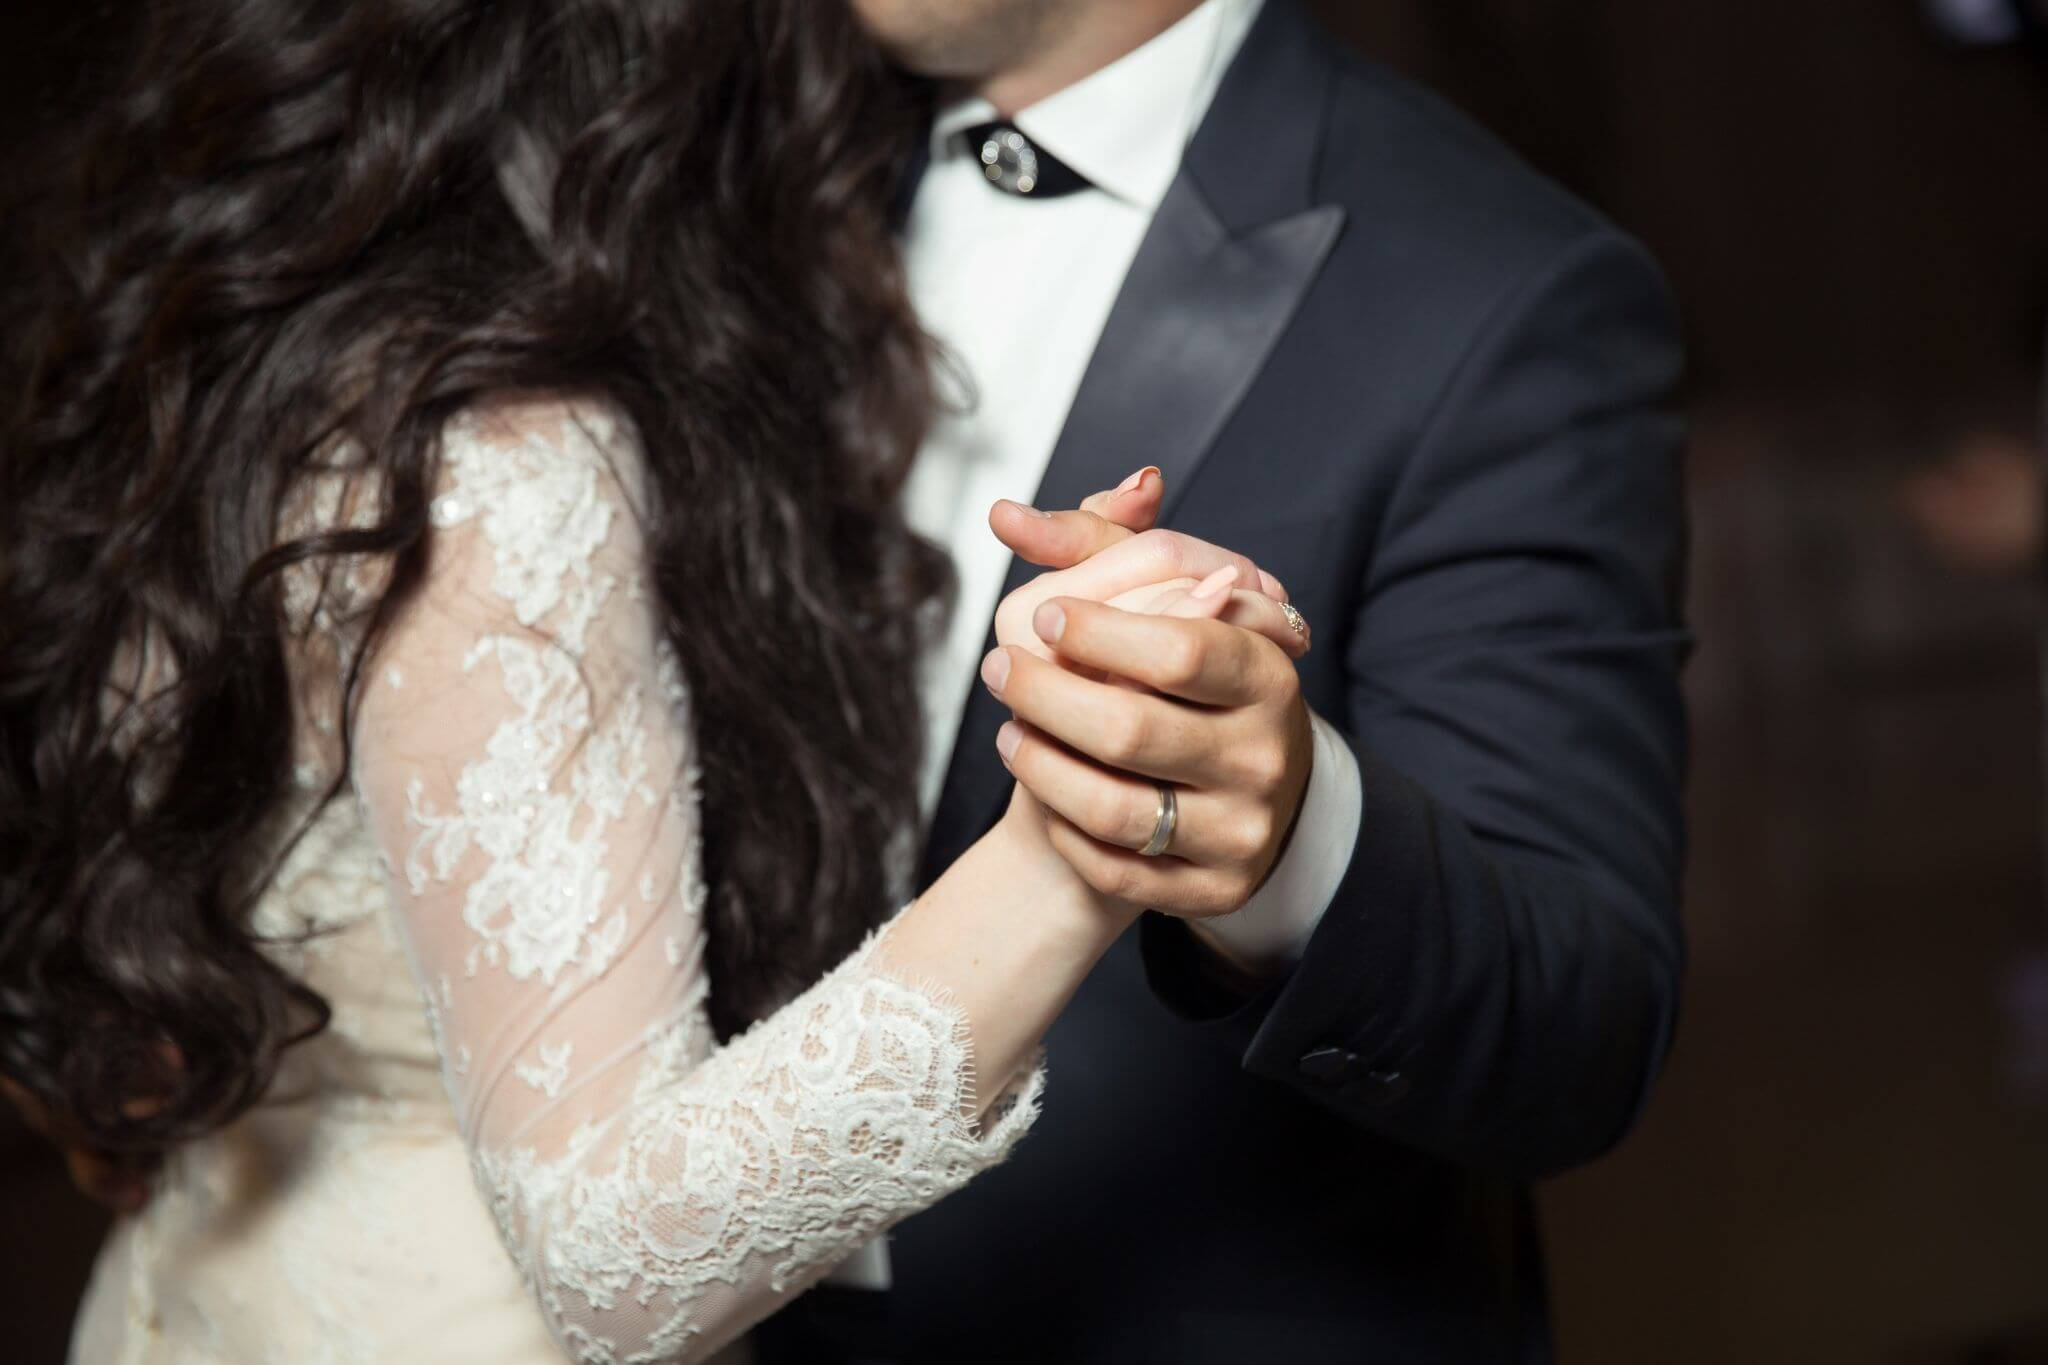 100 First Dance Wedding Songs suggestions